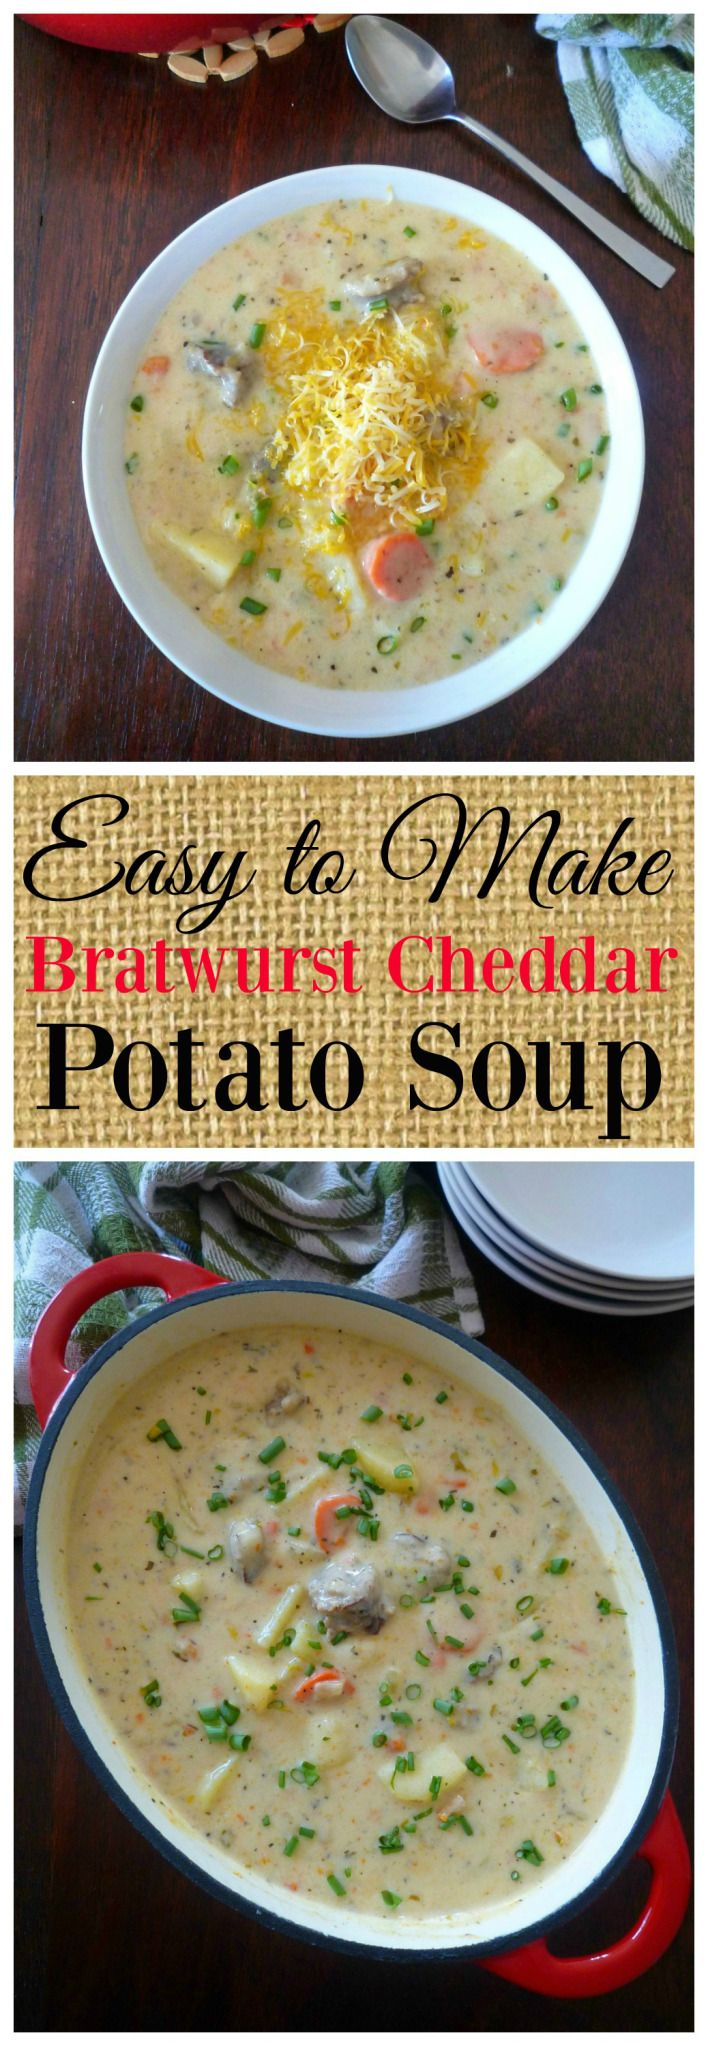 One of the things I love about fall and winter is the endless variety of soups is, not only do they taste fantasticbut warm mybelly and soul on a chilly Fall day. Bratwurst Cheddar Potato Soup is…